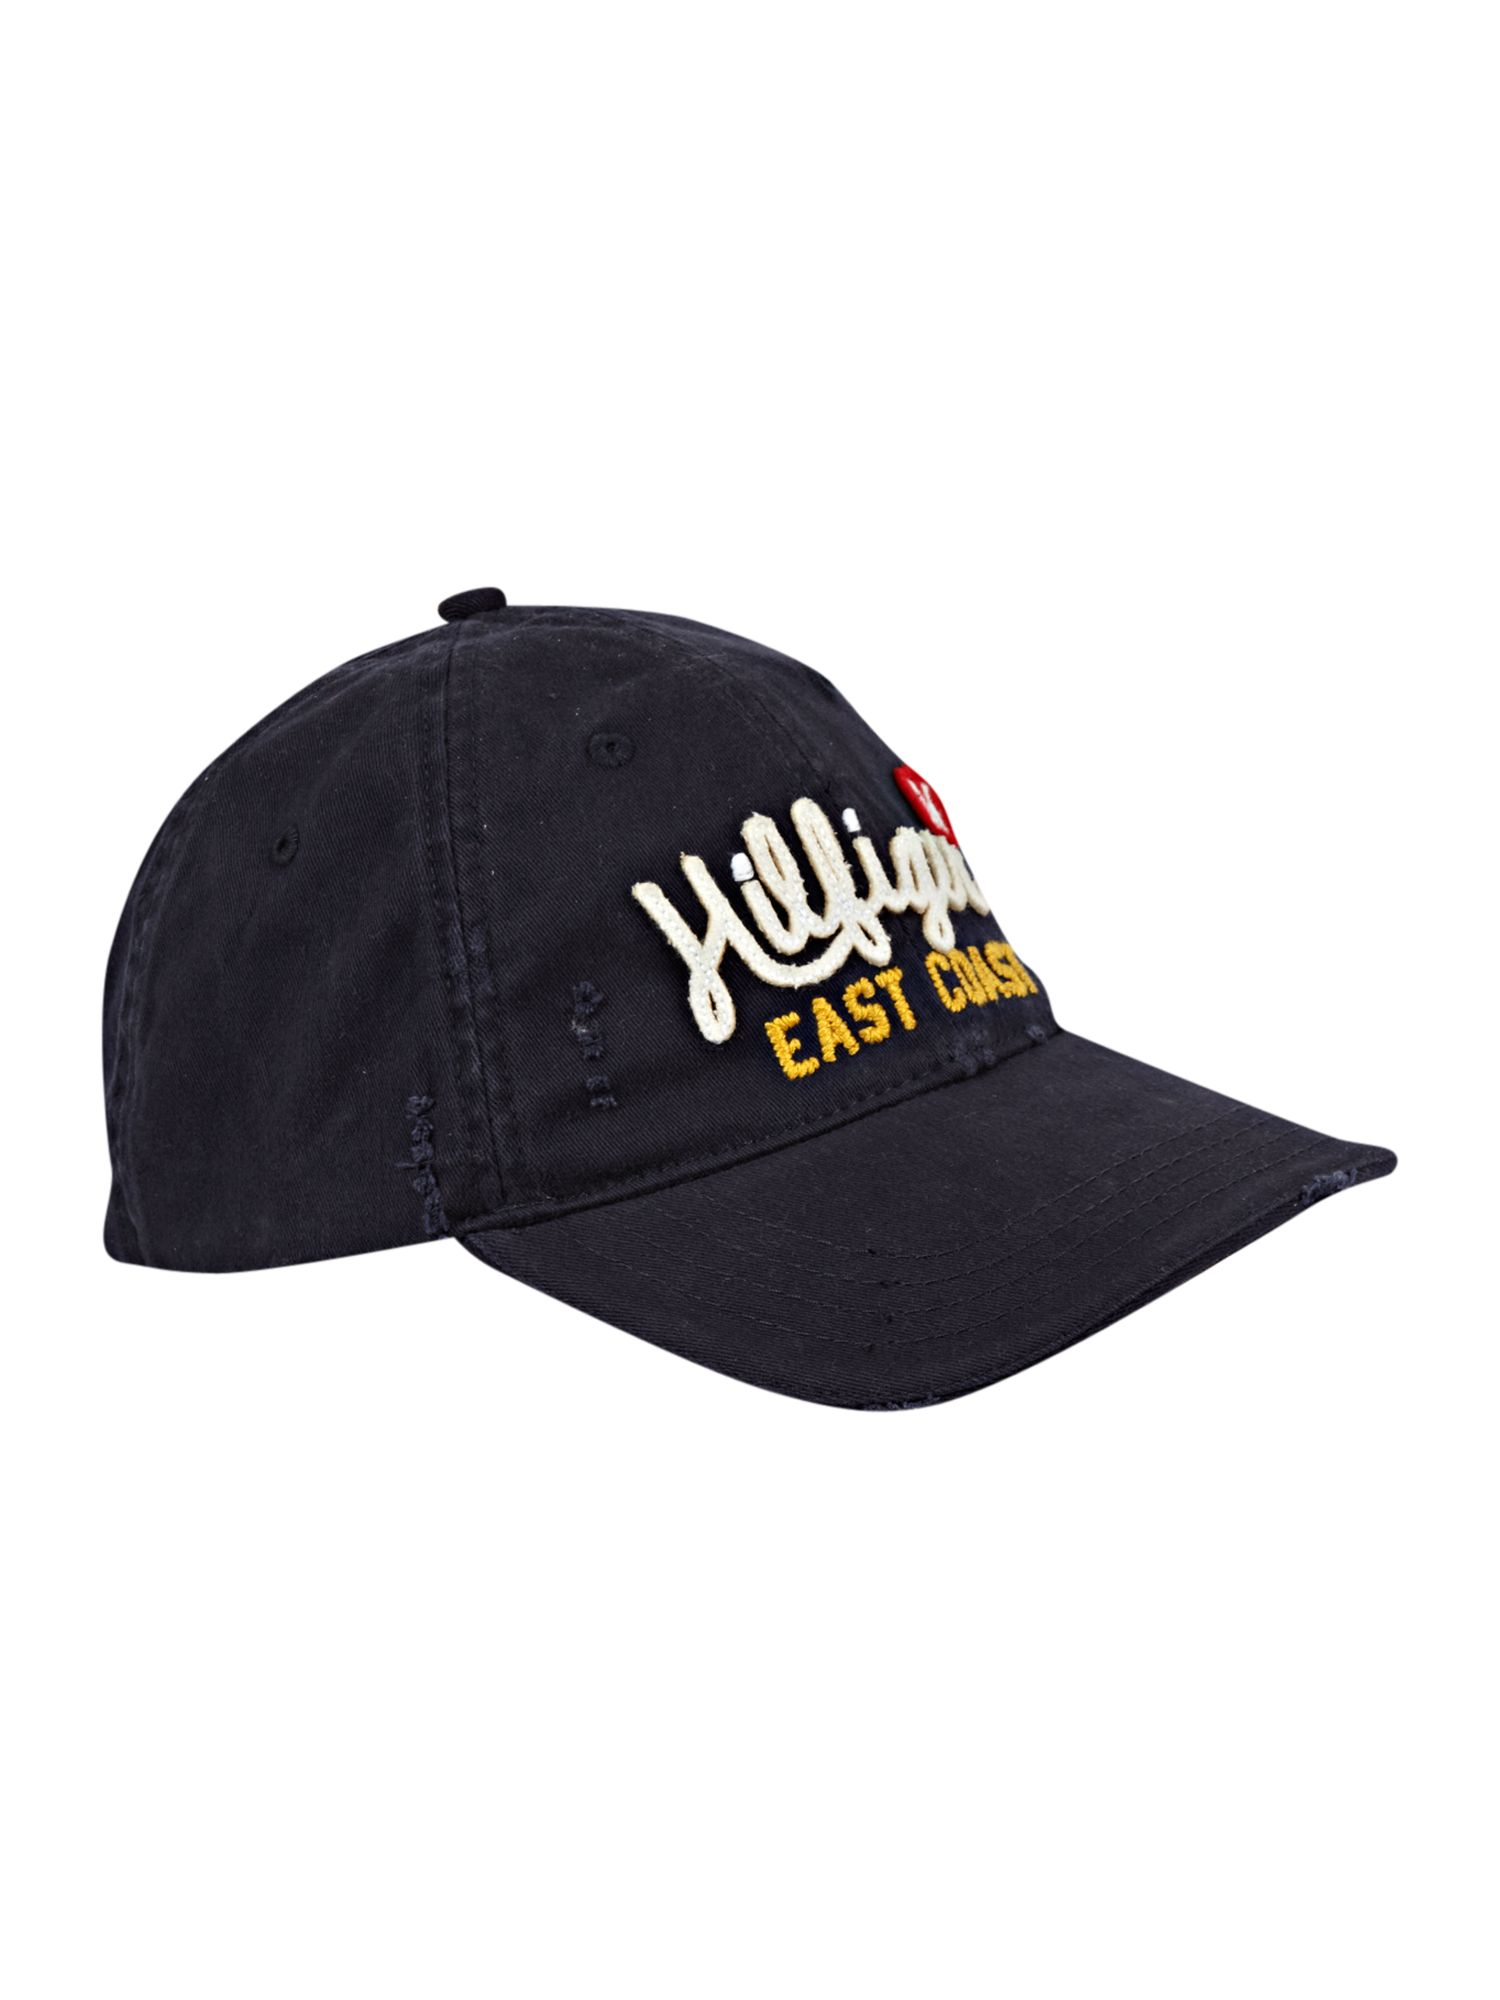 Tommy Hilfiger Baseball cap with stitch logo - Navy `One Size product image